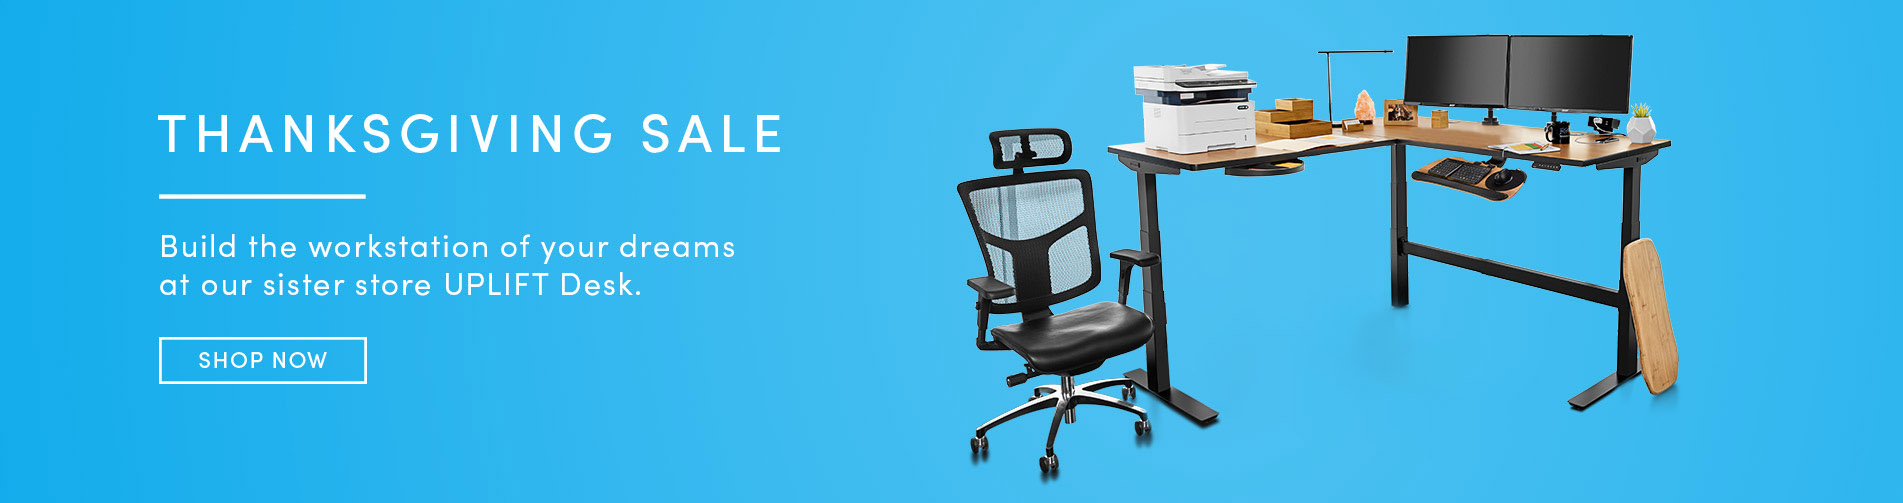 Shop our Thanksgiving Sale on our sister site, UPLIFT Desk!